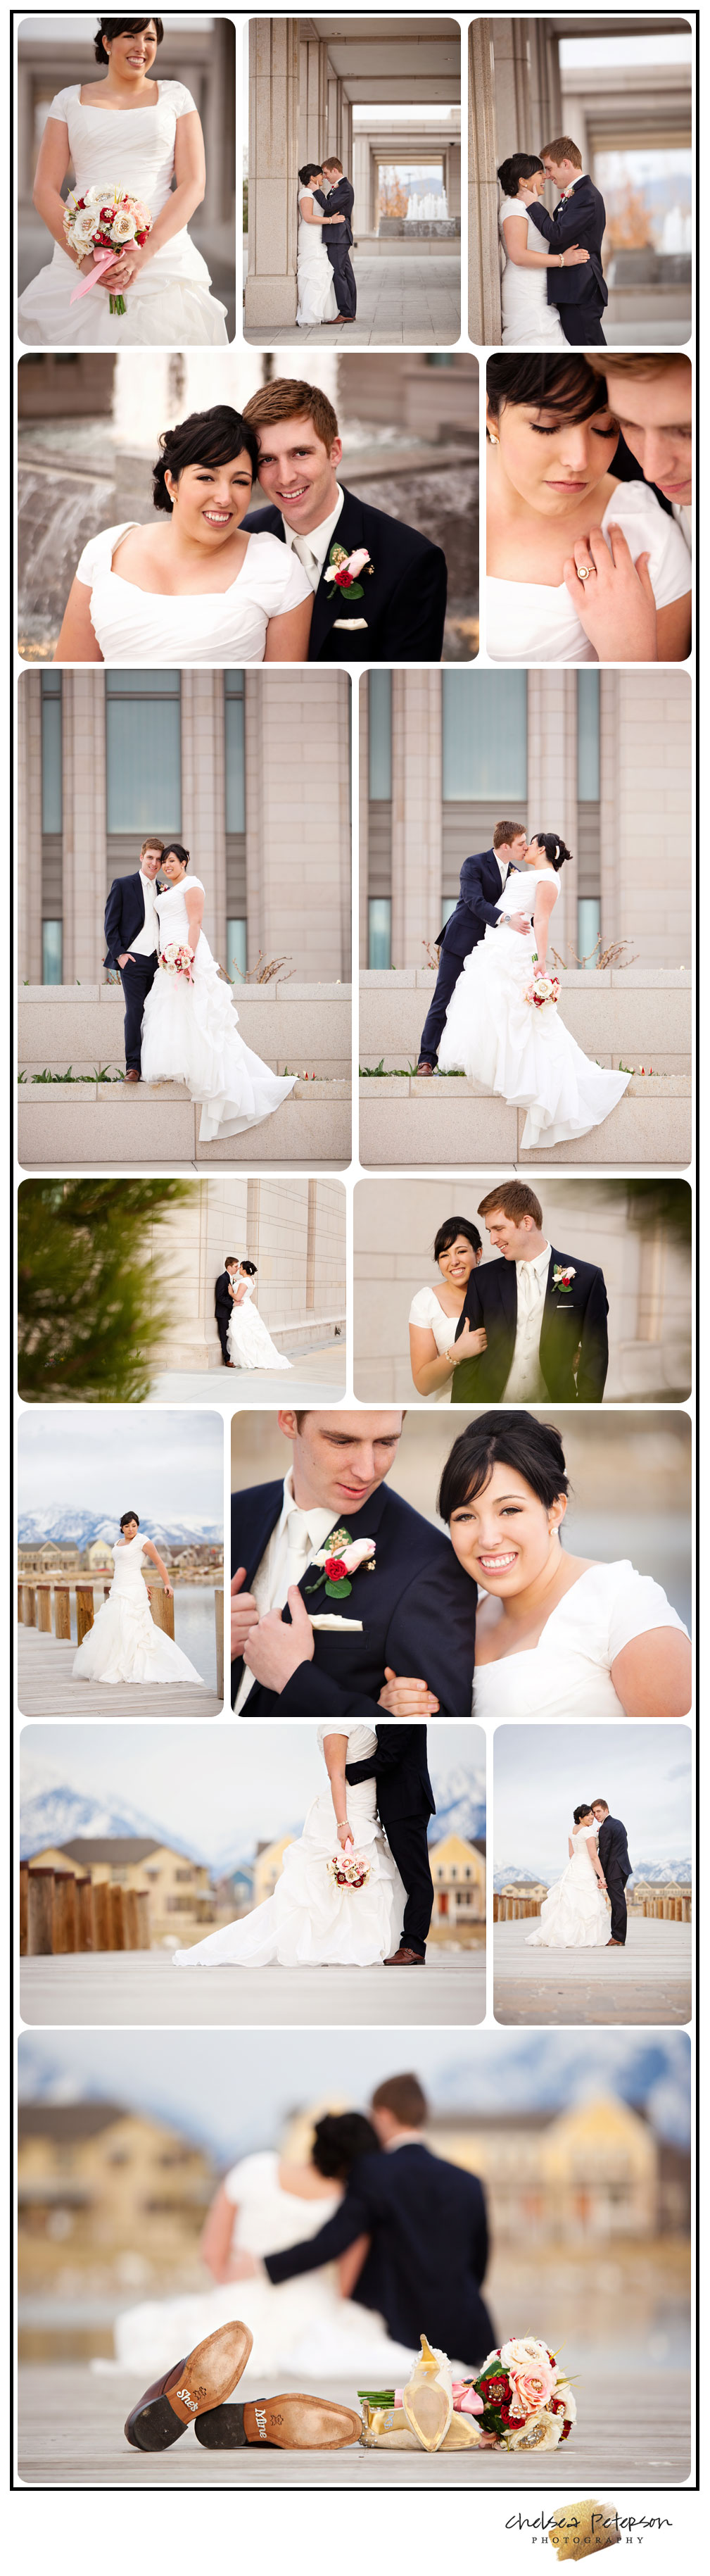 Utah-Wedding-Photography-Corinne-and-Jason-Bridals